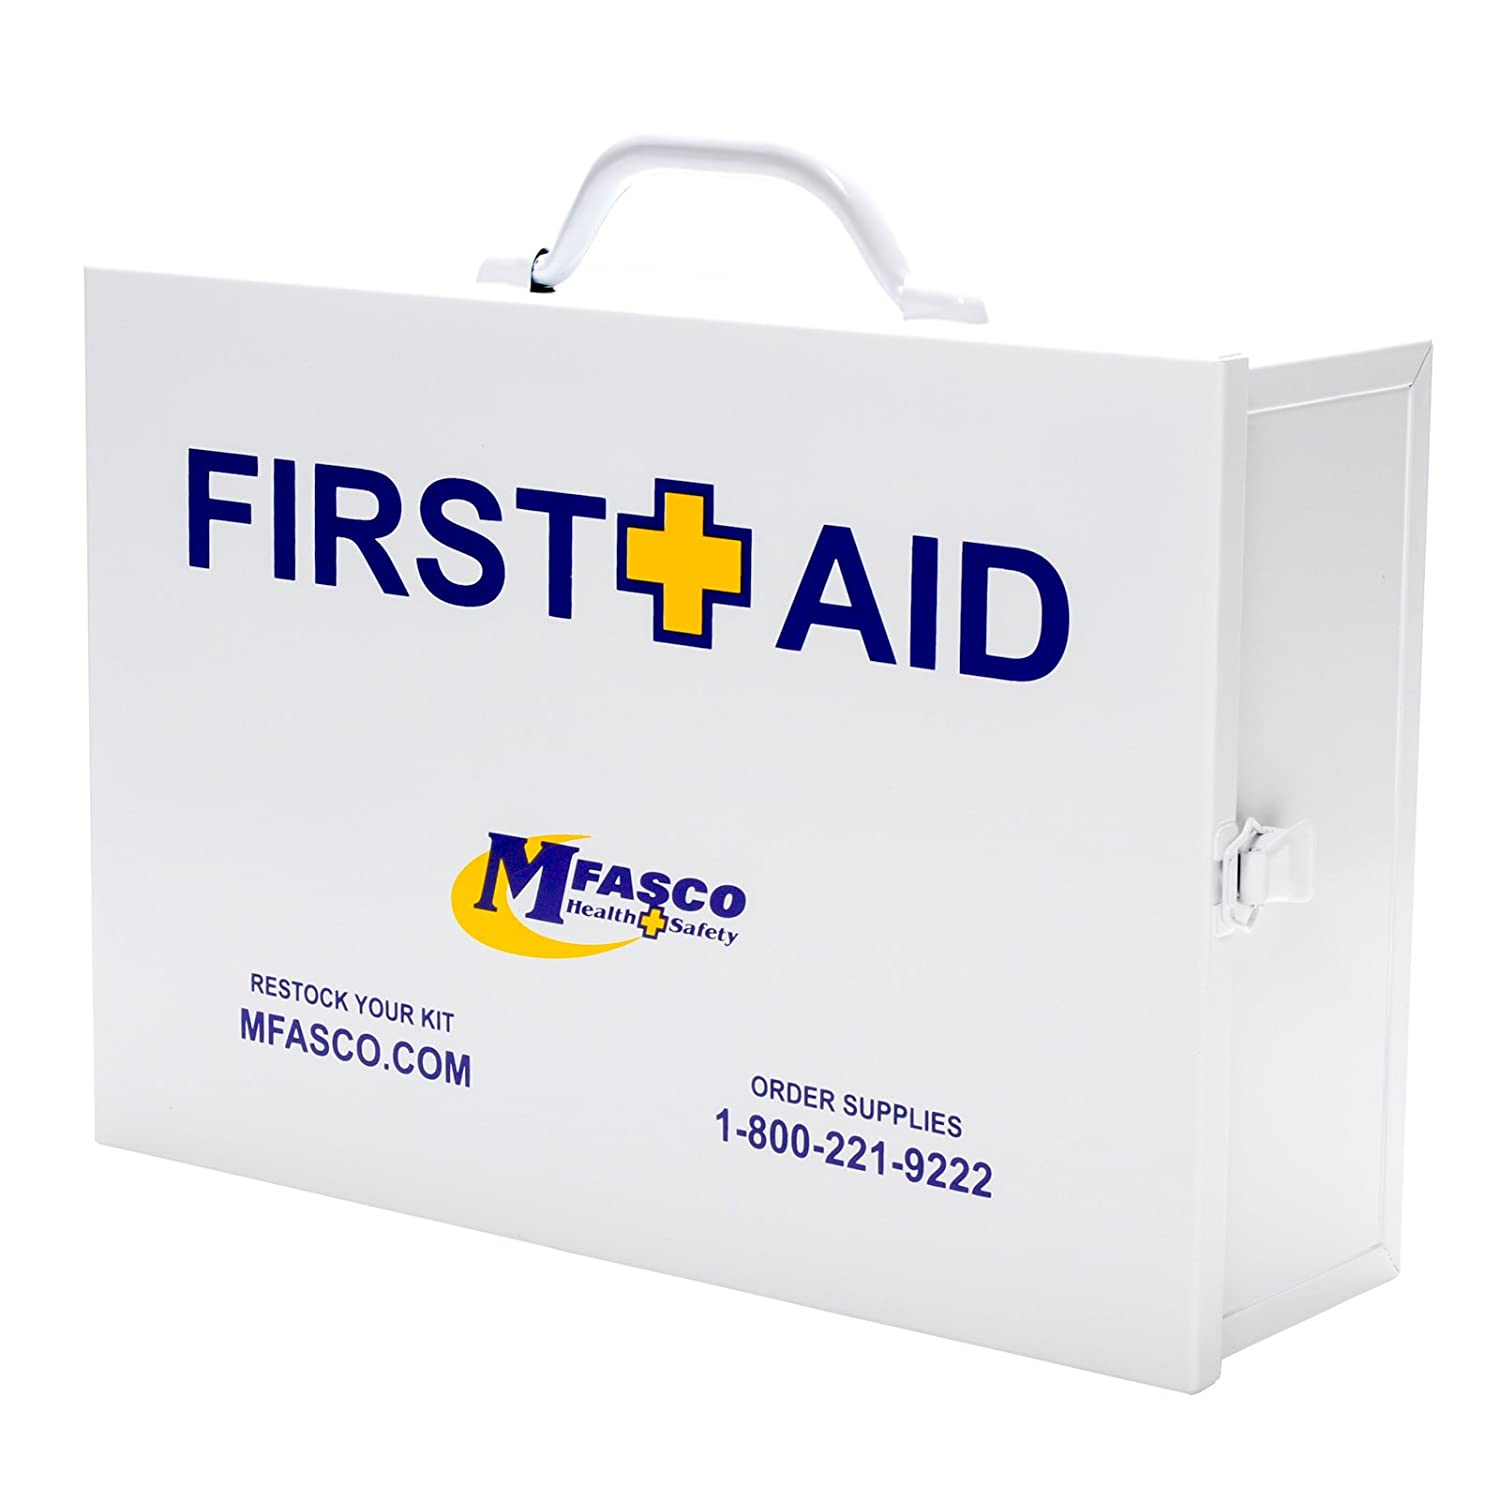 Restaurant First Aid Kit 2 Shelf Metal Cabinet OSHA Class A by MFASCO